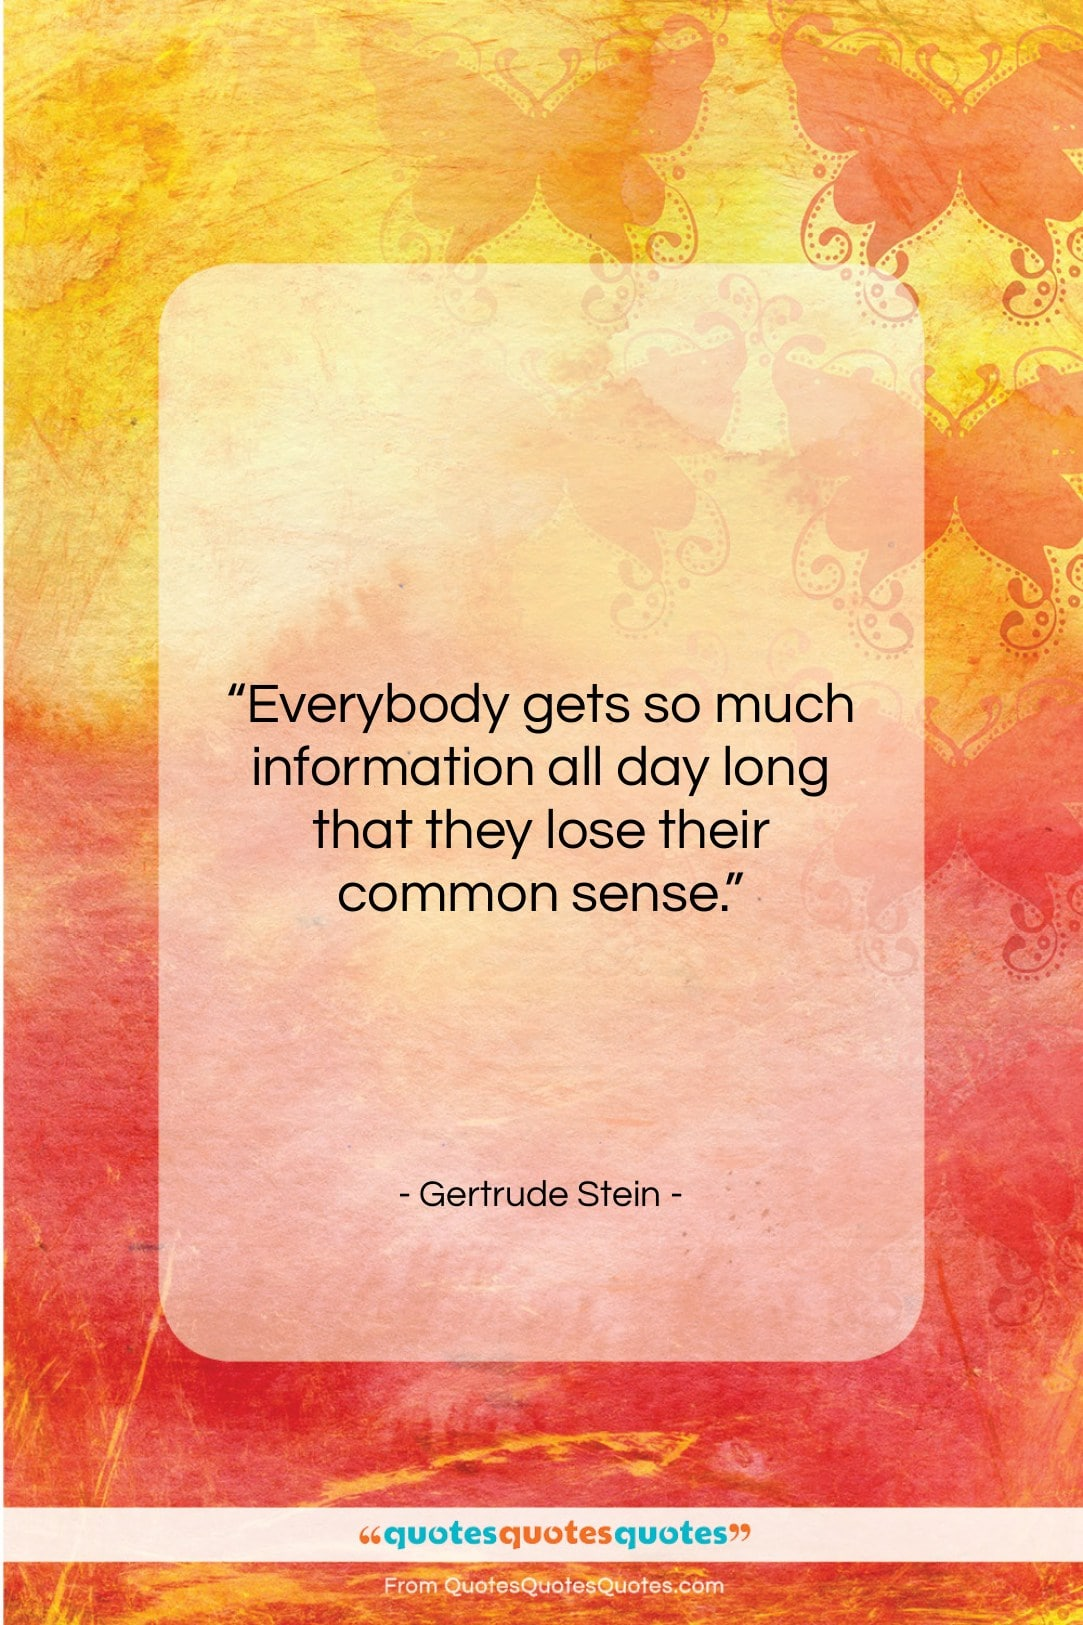 """Gertrude Stein quote: """"Everybody gets so much information all day…""""- at QuotesQuotesQuotes.com"""